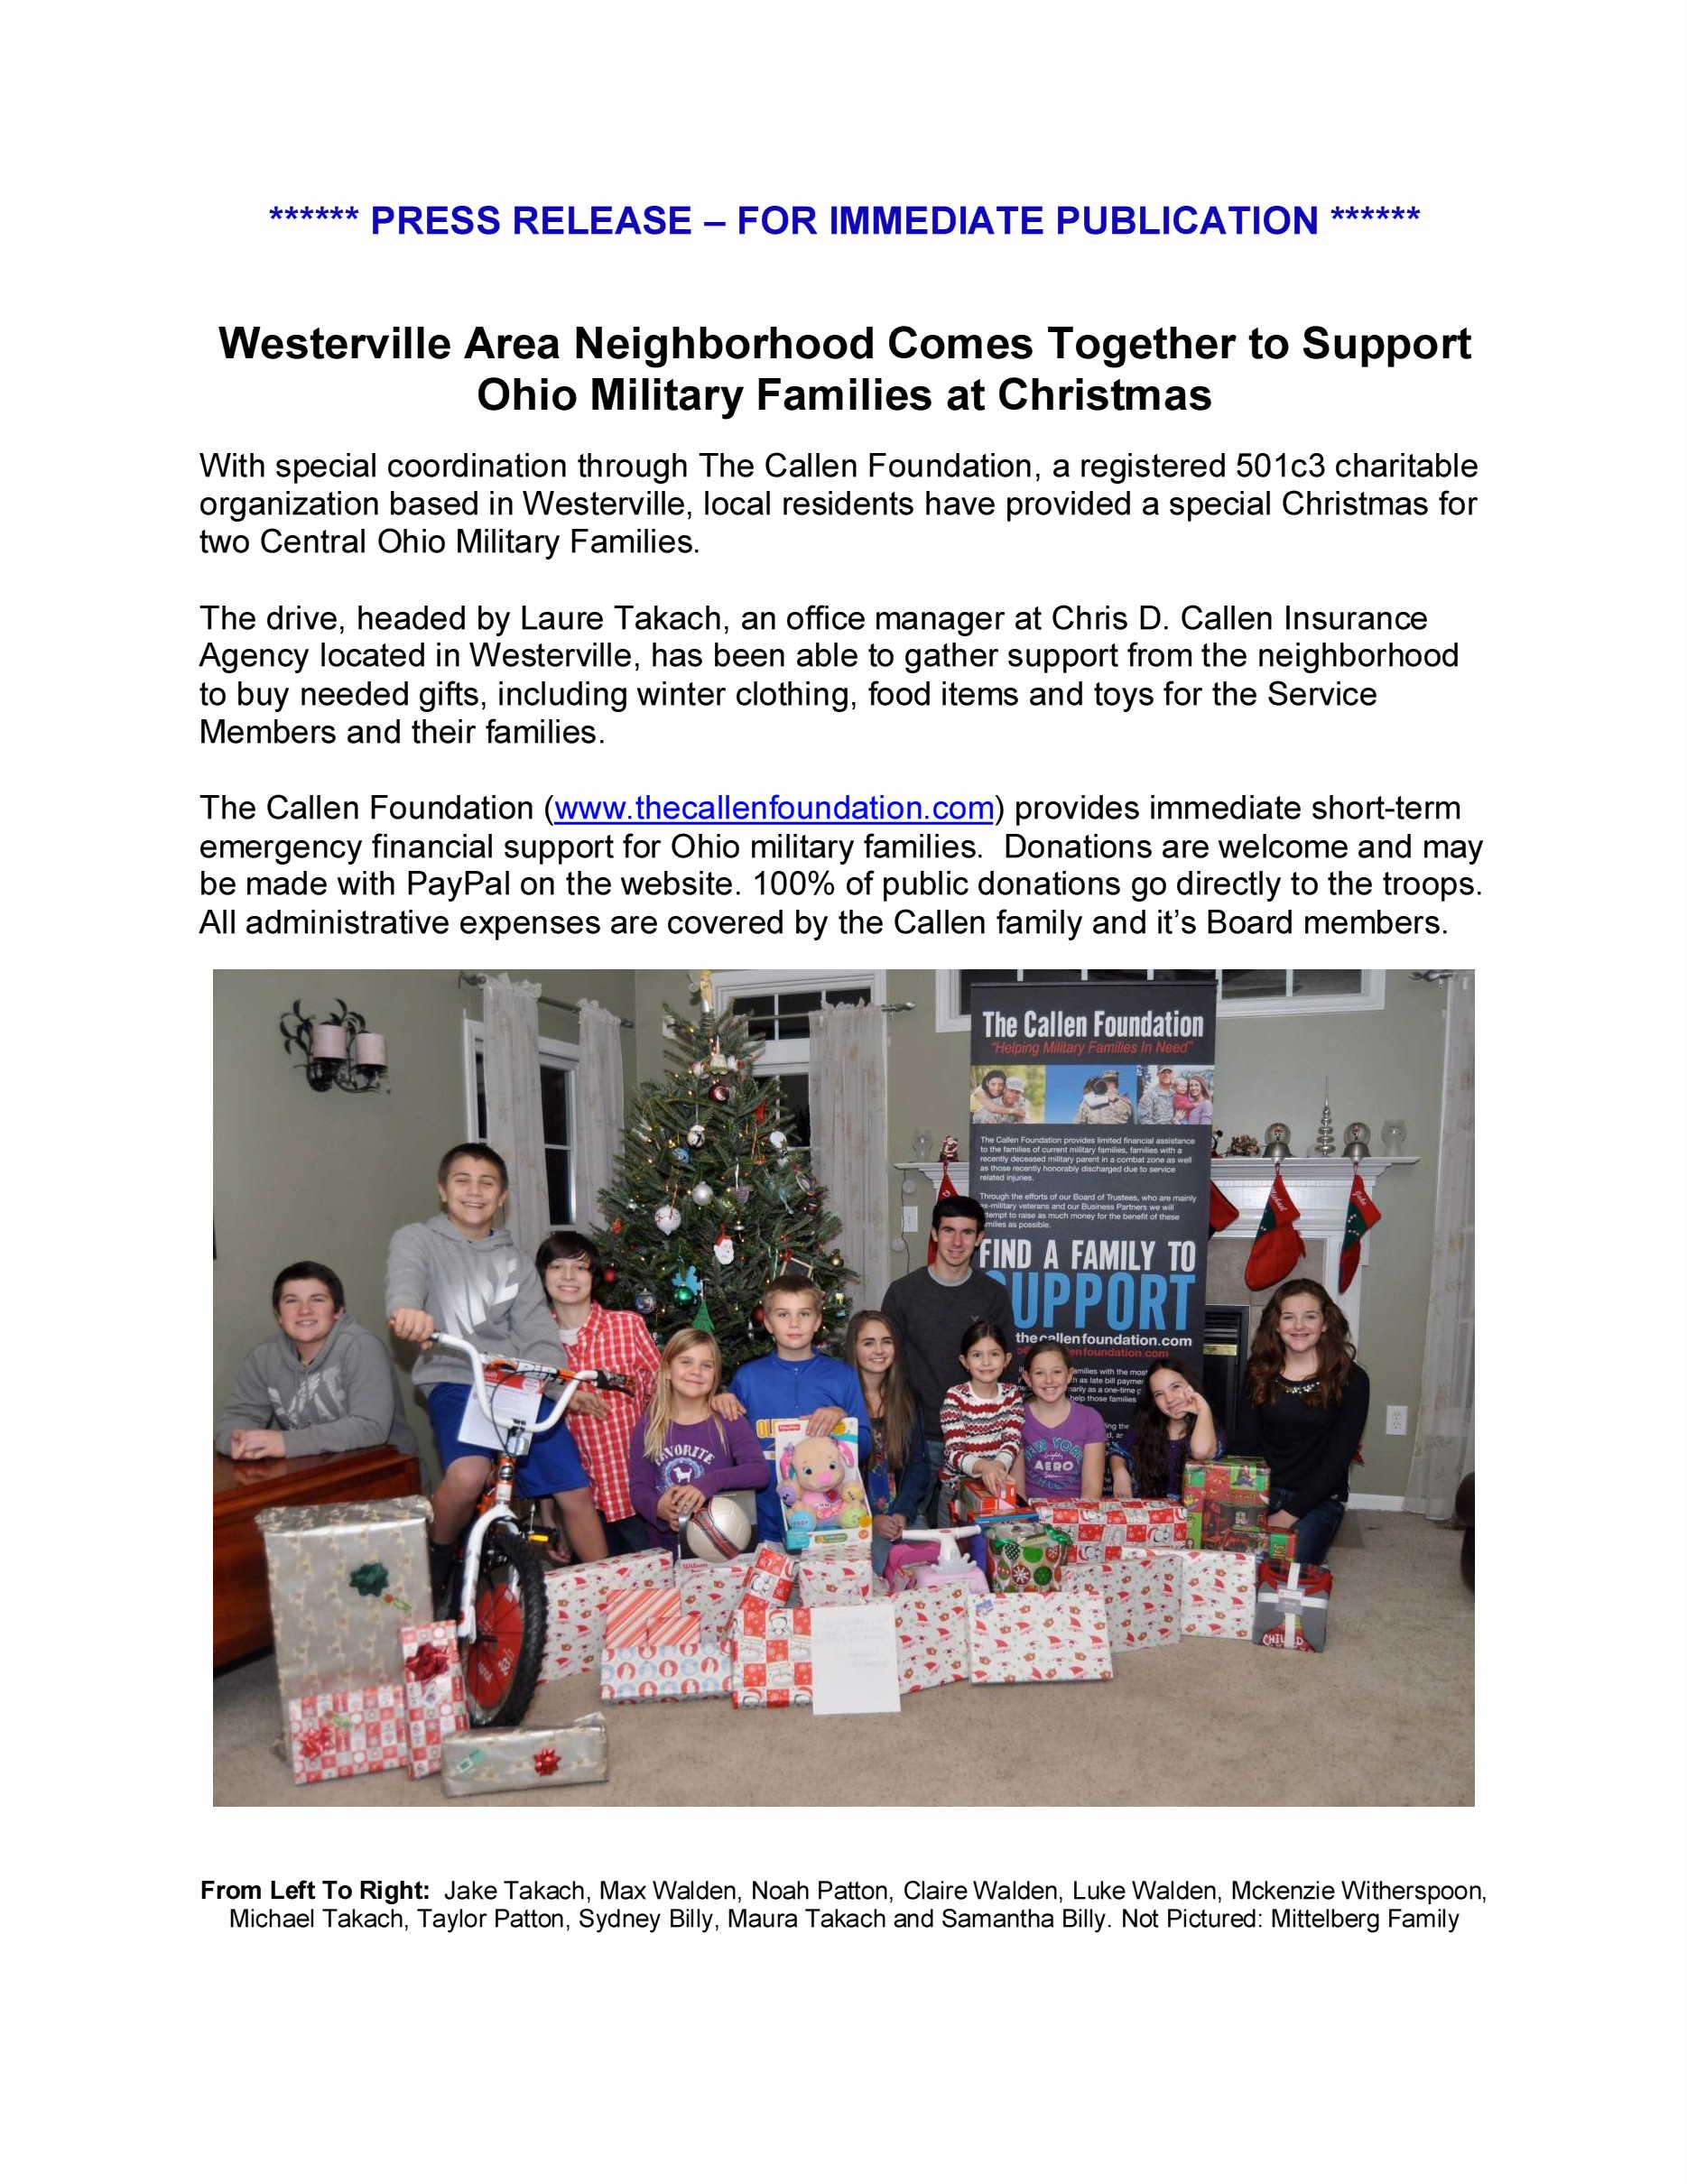 PRESS RELEASE - Westerville News - 12-16-13. VER 2